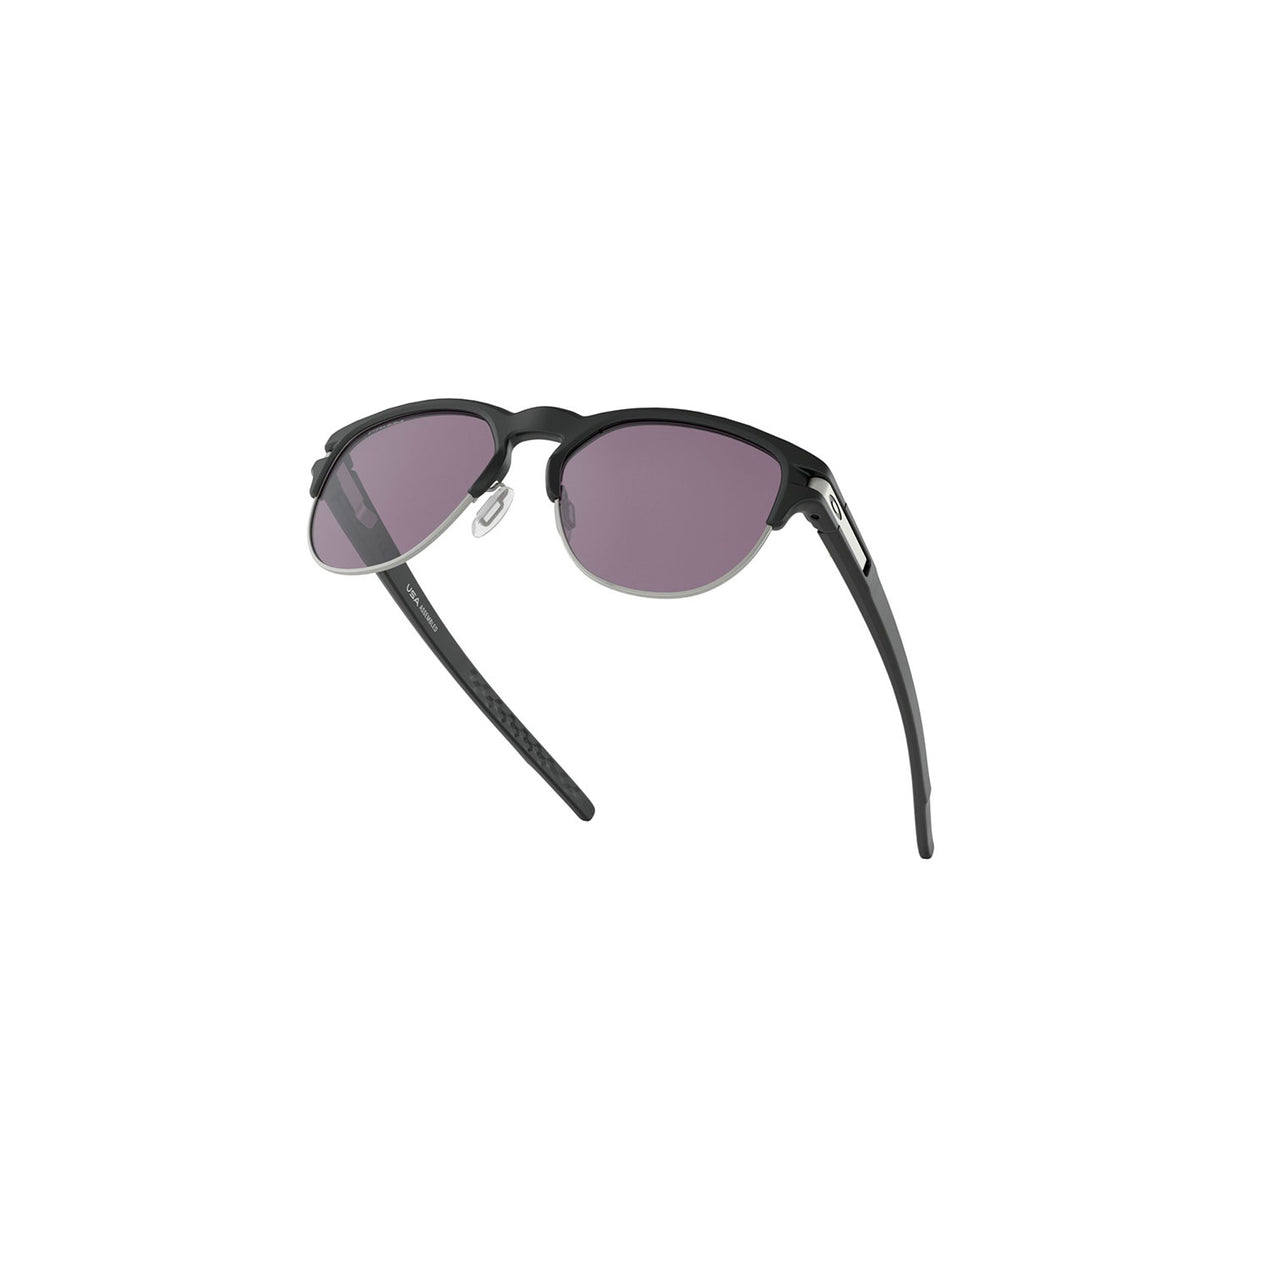 ed5c4aee8c ... Latch Key M Matte Black - Prizm Grey Lens Sunglasses thumb ...